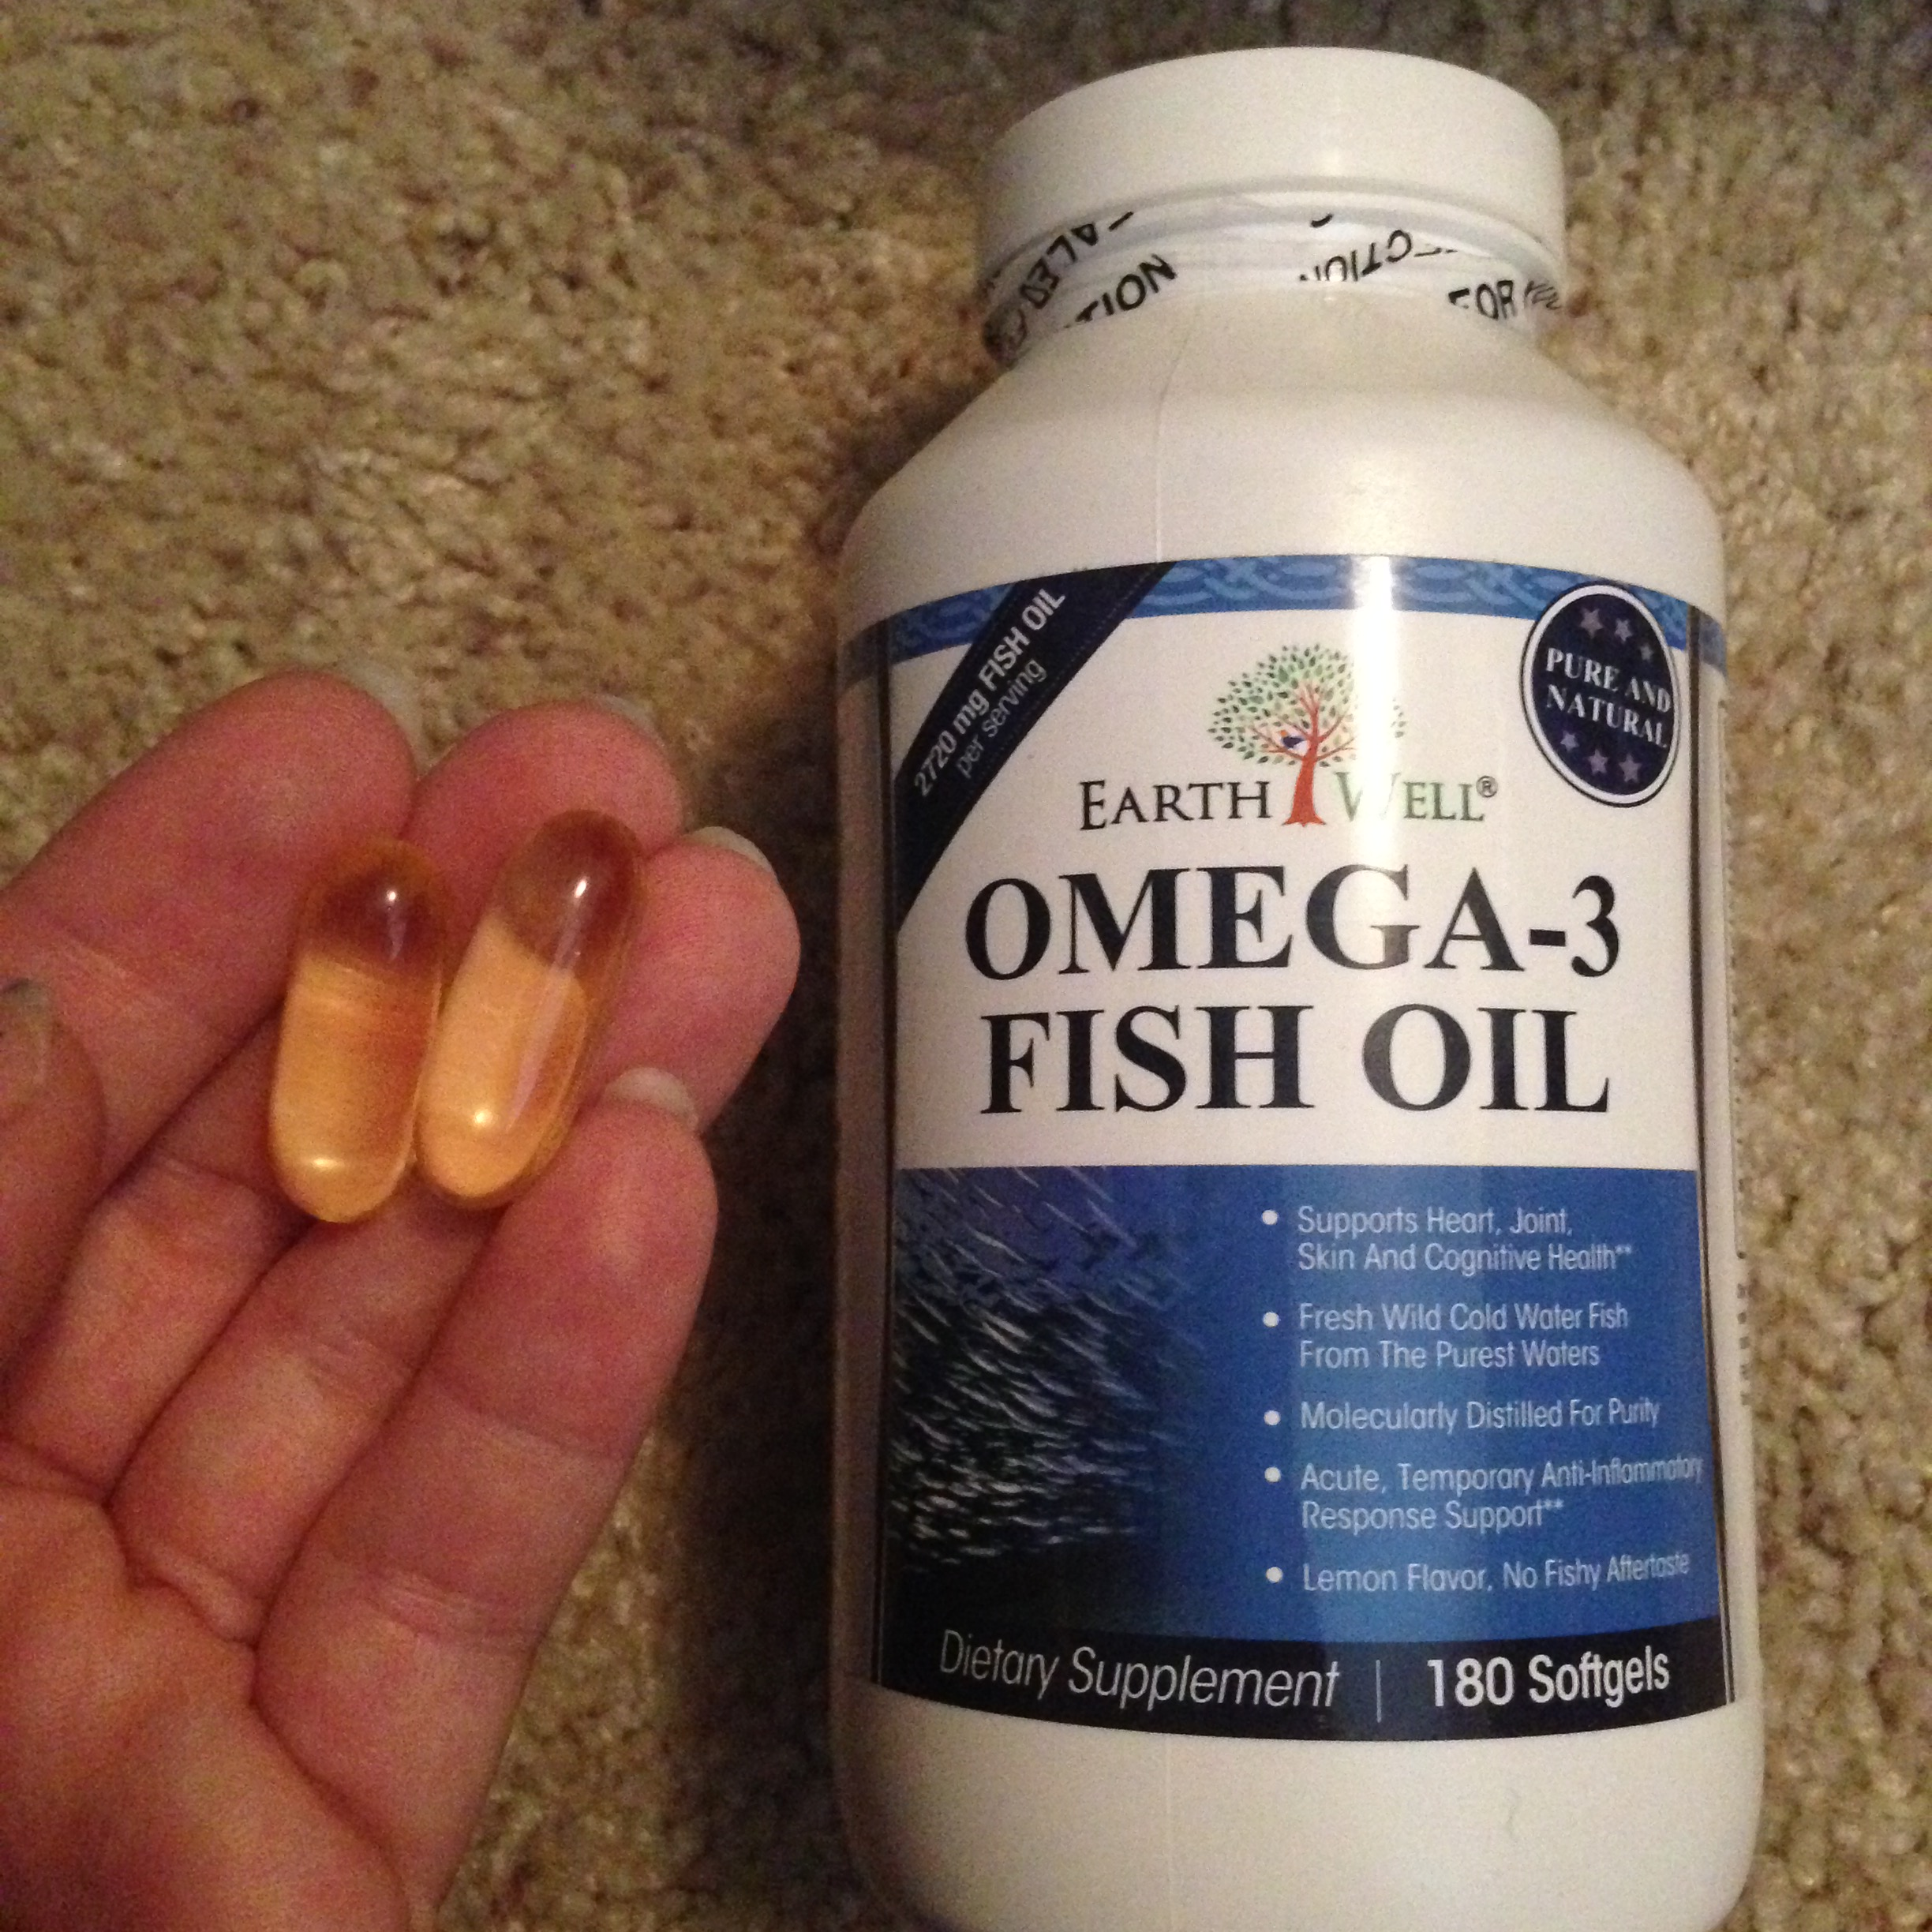 Product review lemon flavored omega 3 fish oil supplement for Omega 3 fish oil reviews